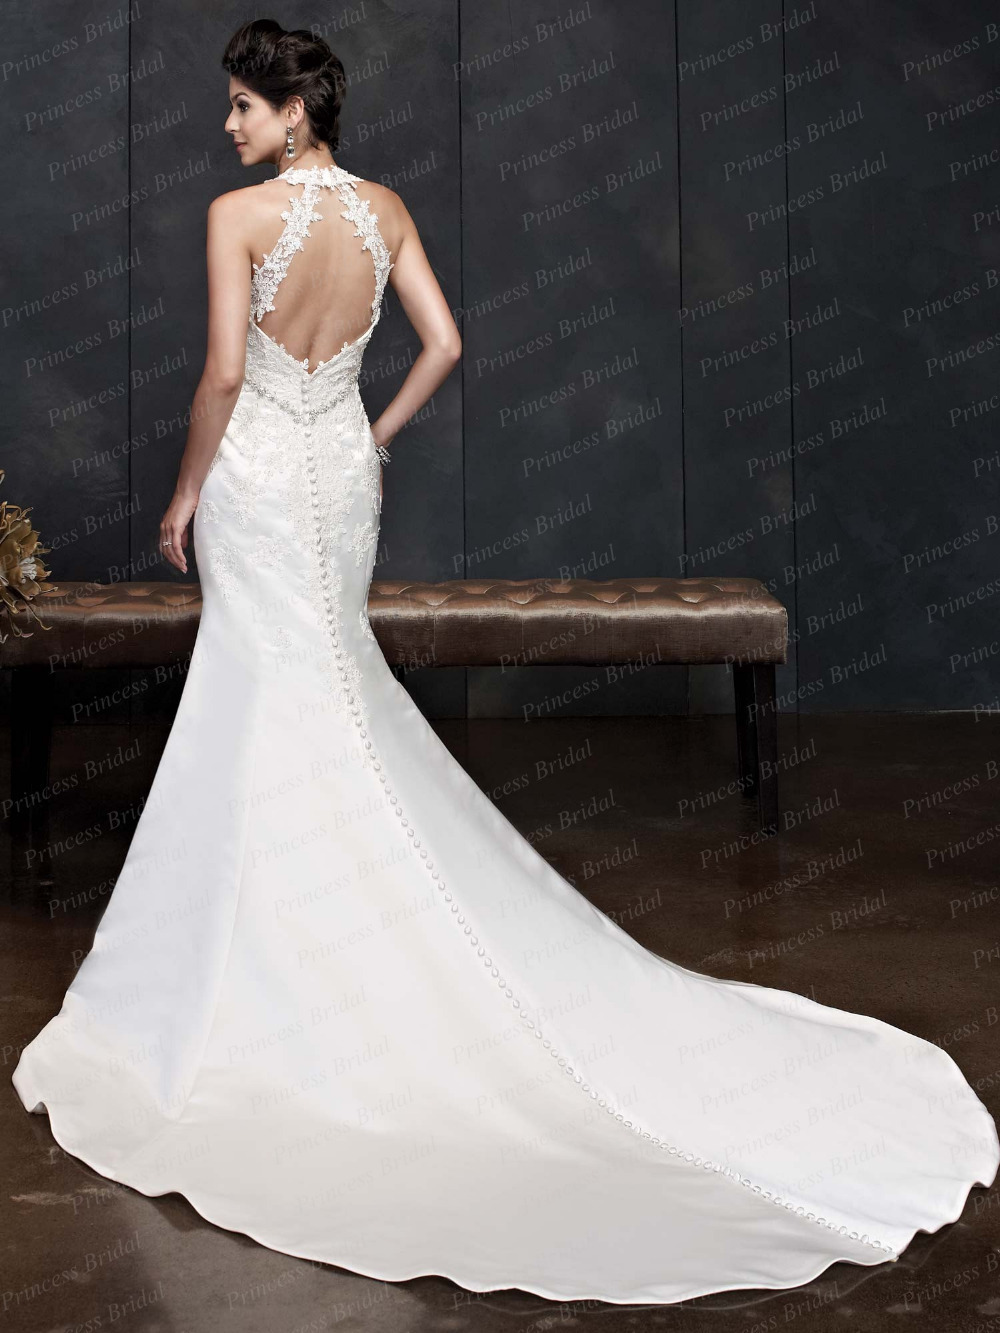 Fishtail Wedding Dress With Low Back Cut Dresses Galleryhip The